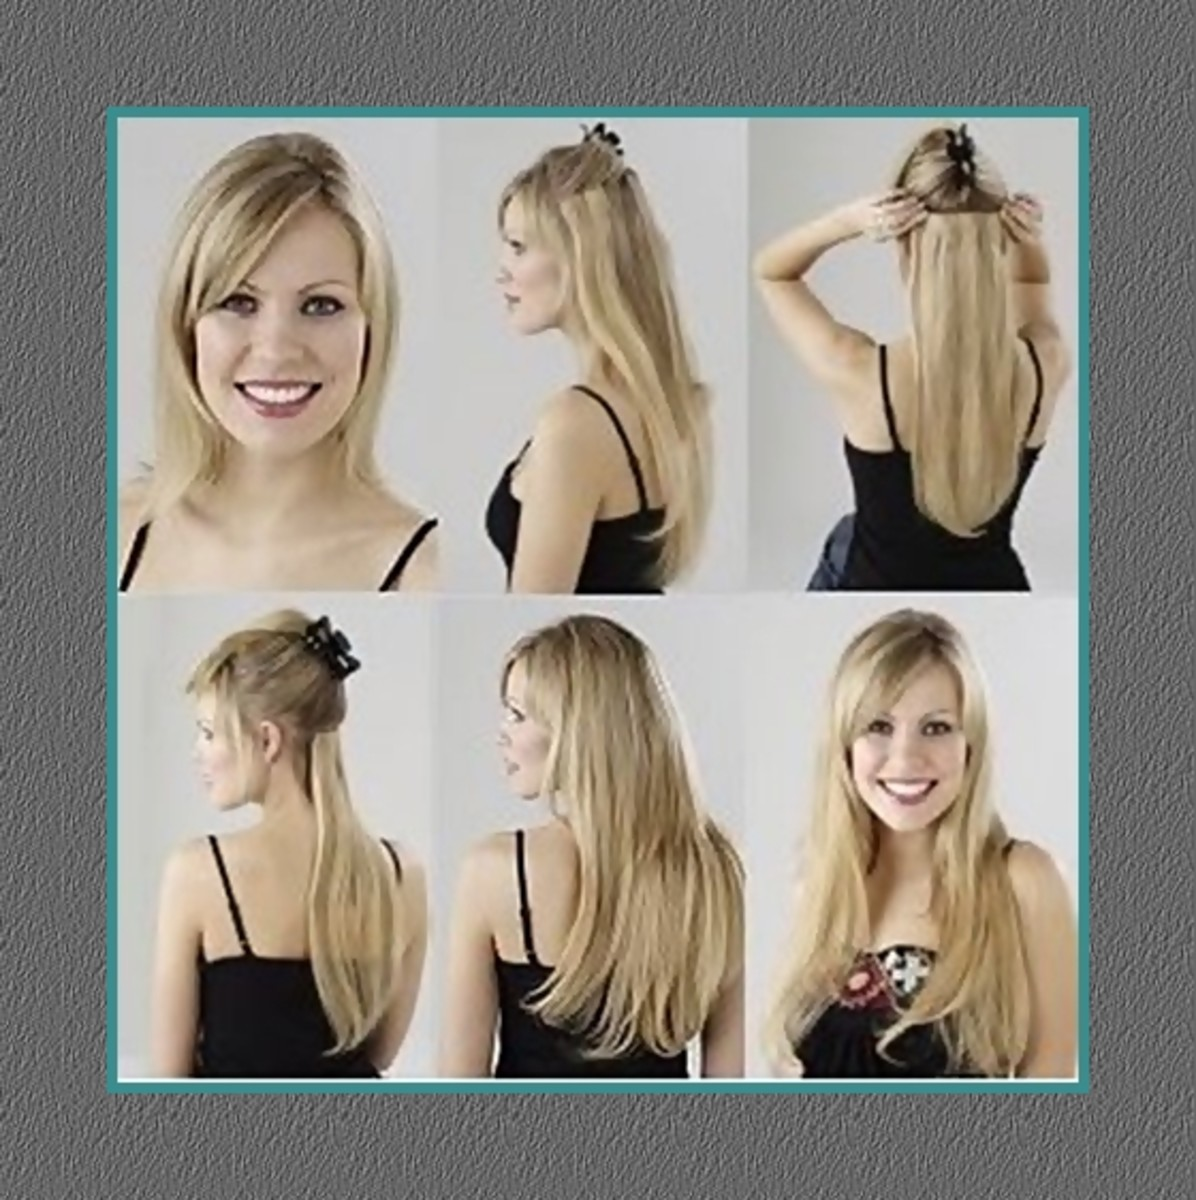 Human Hair Clip Hair Extensions - 2013 Hairstyles for Women - How to ...